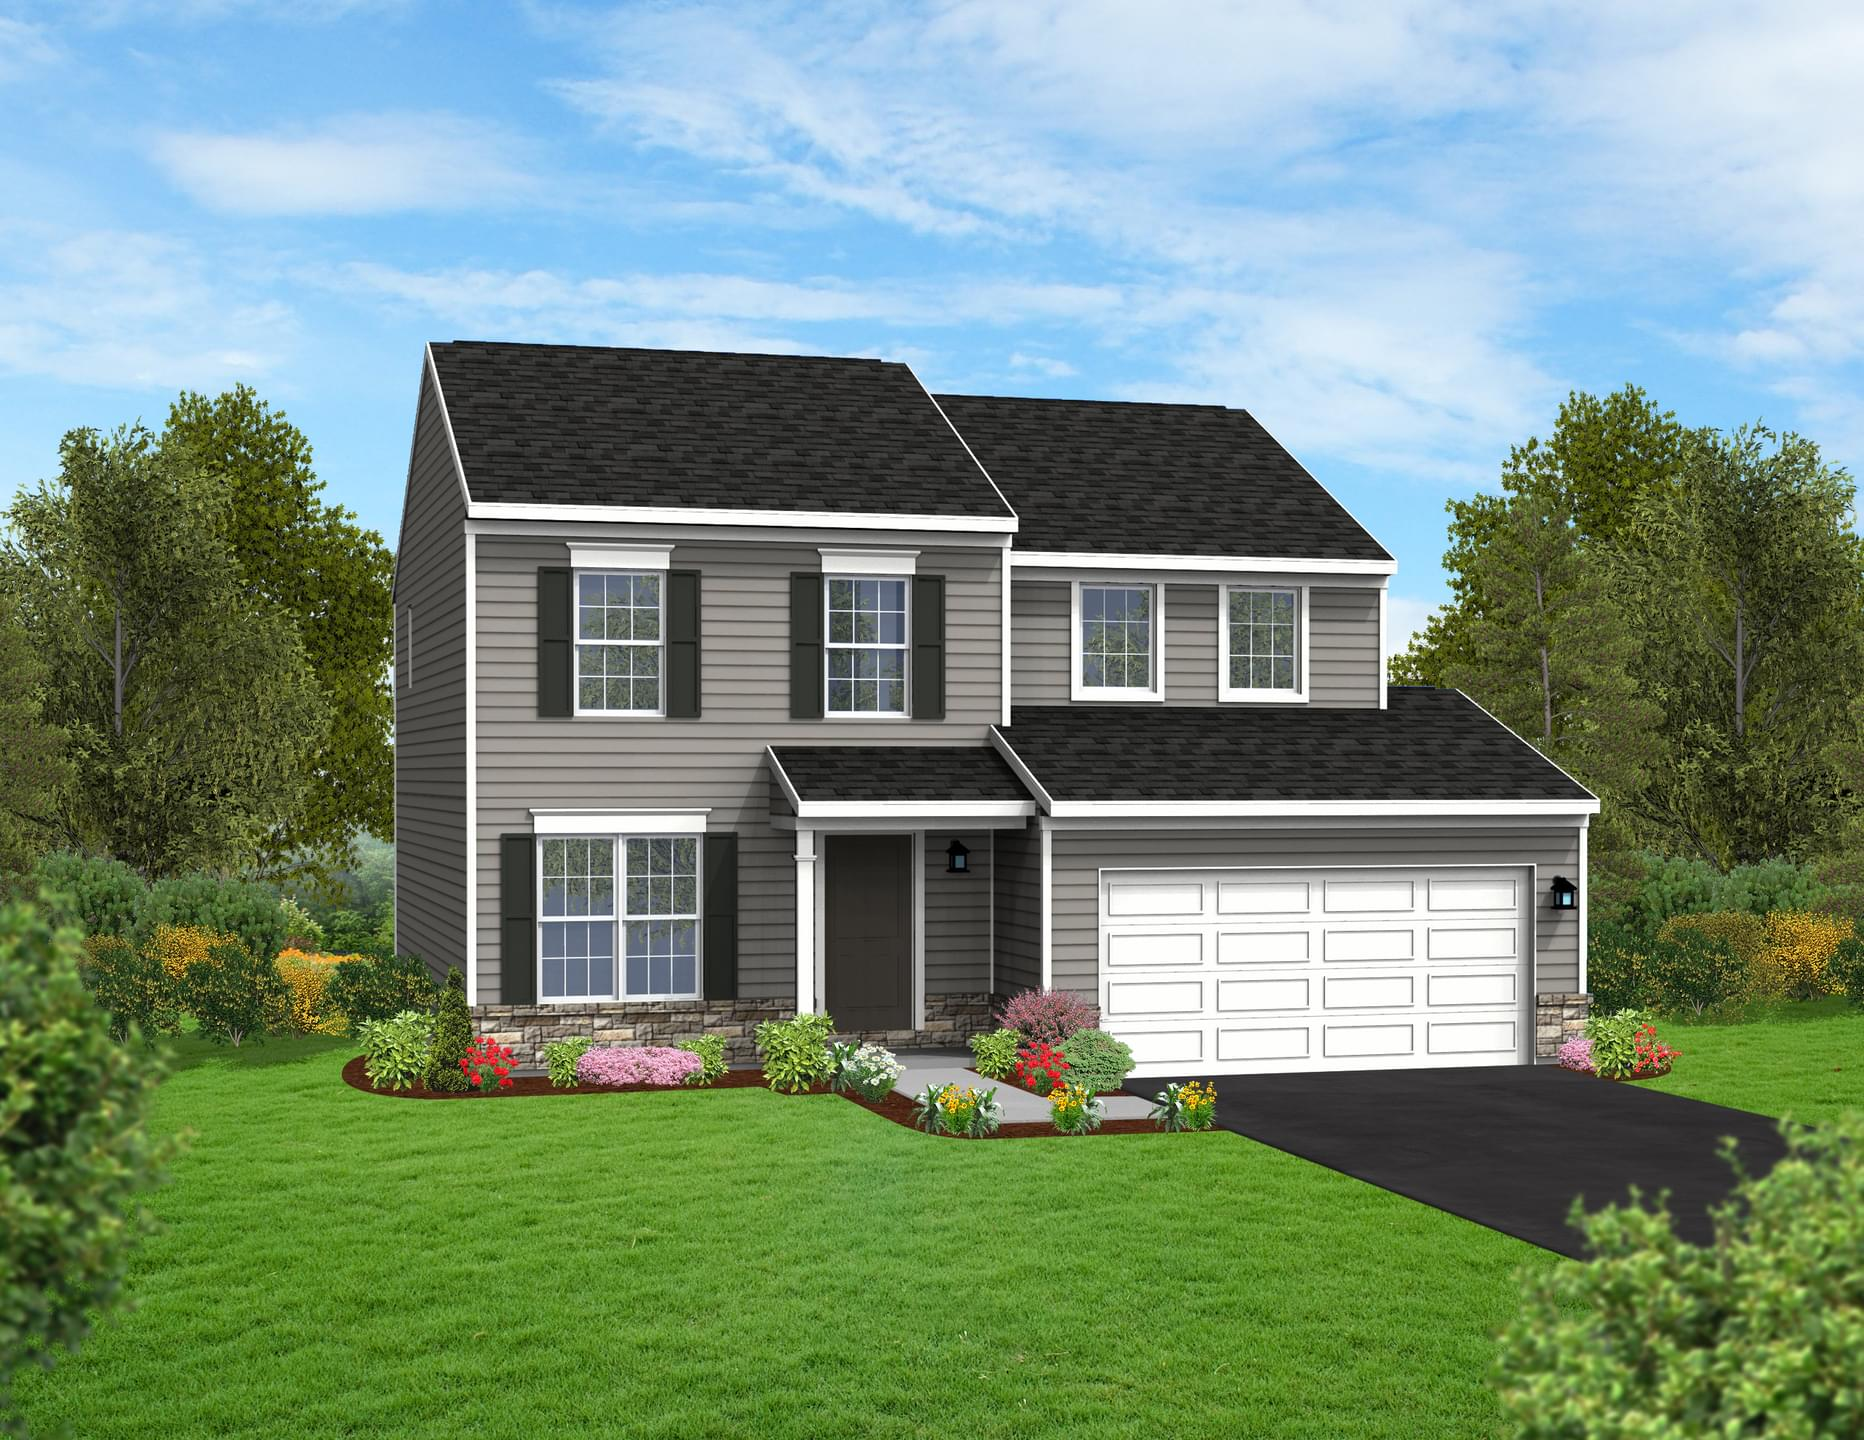 Berks Homes Elevation Image Revere